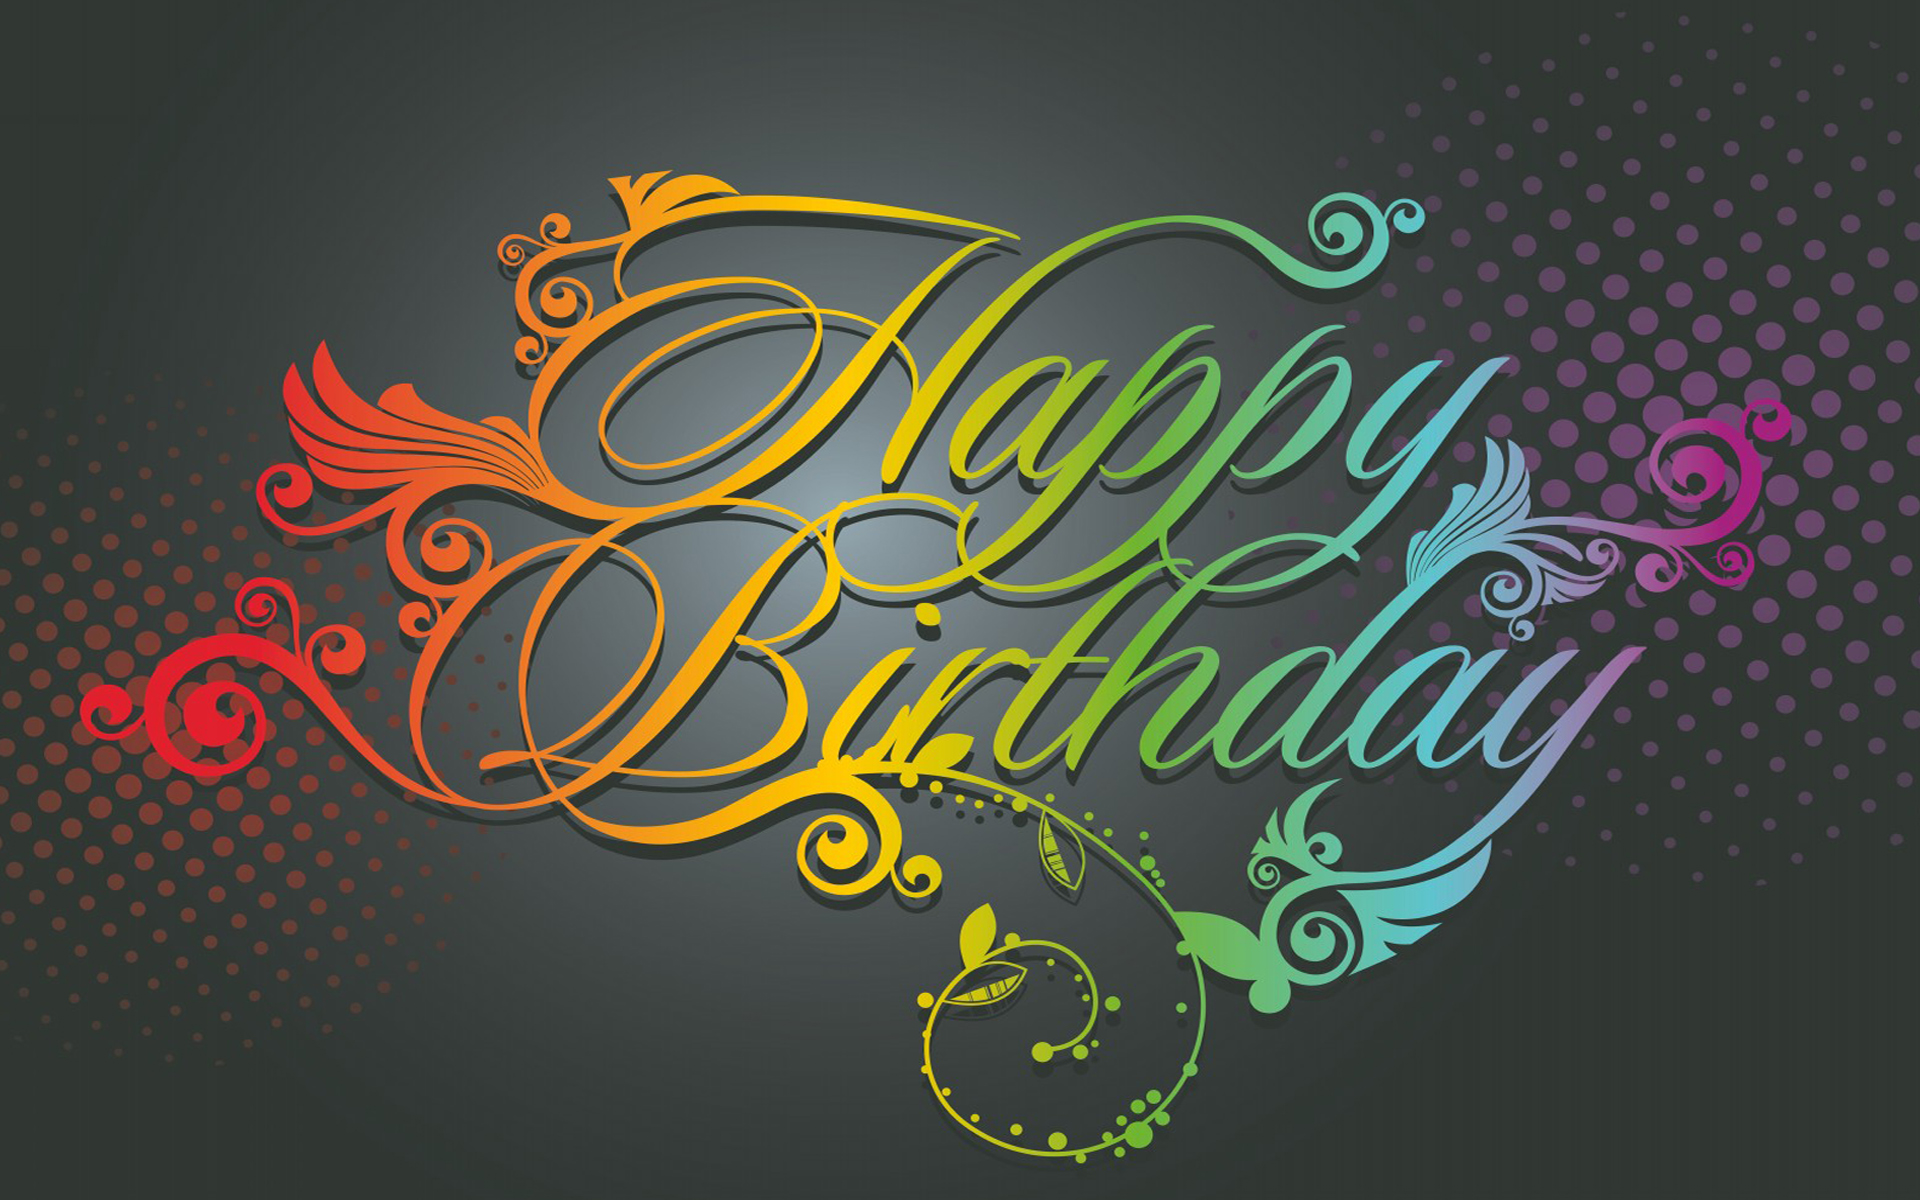 happy birthday wishes wallpaper hd ; Happy-birthday-new-image-wallpapers-HD